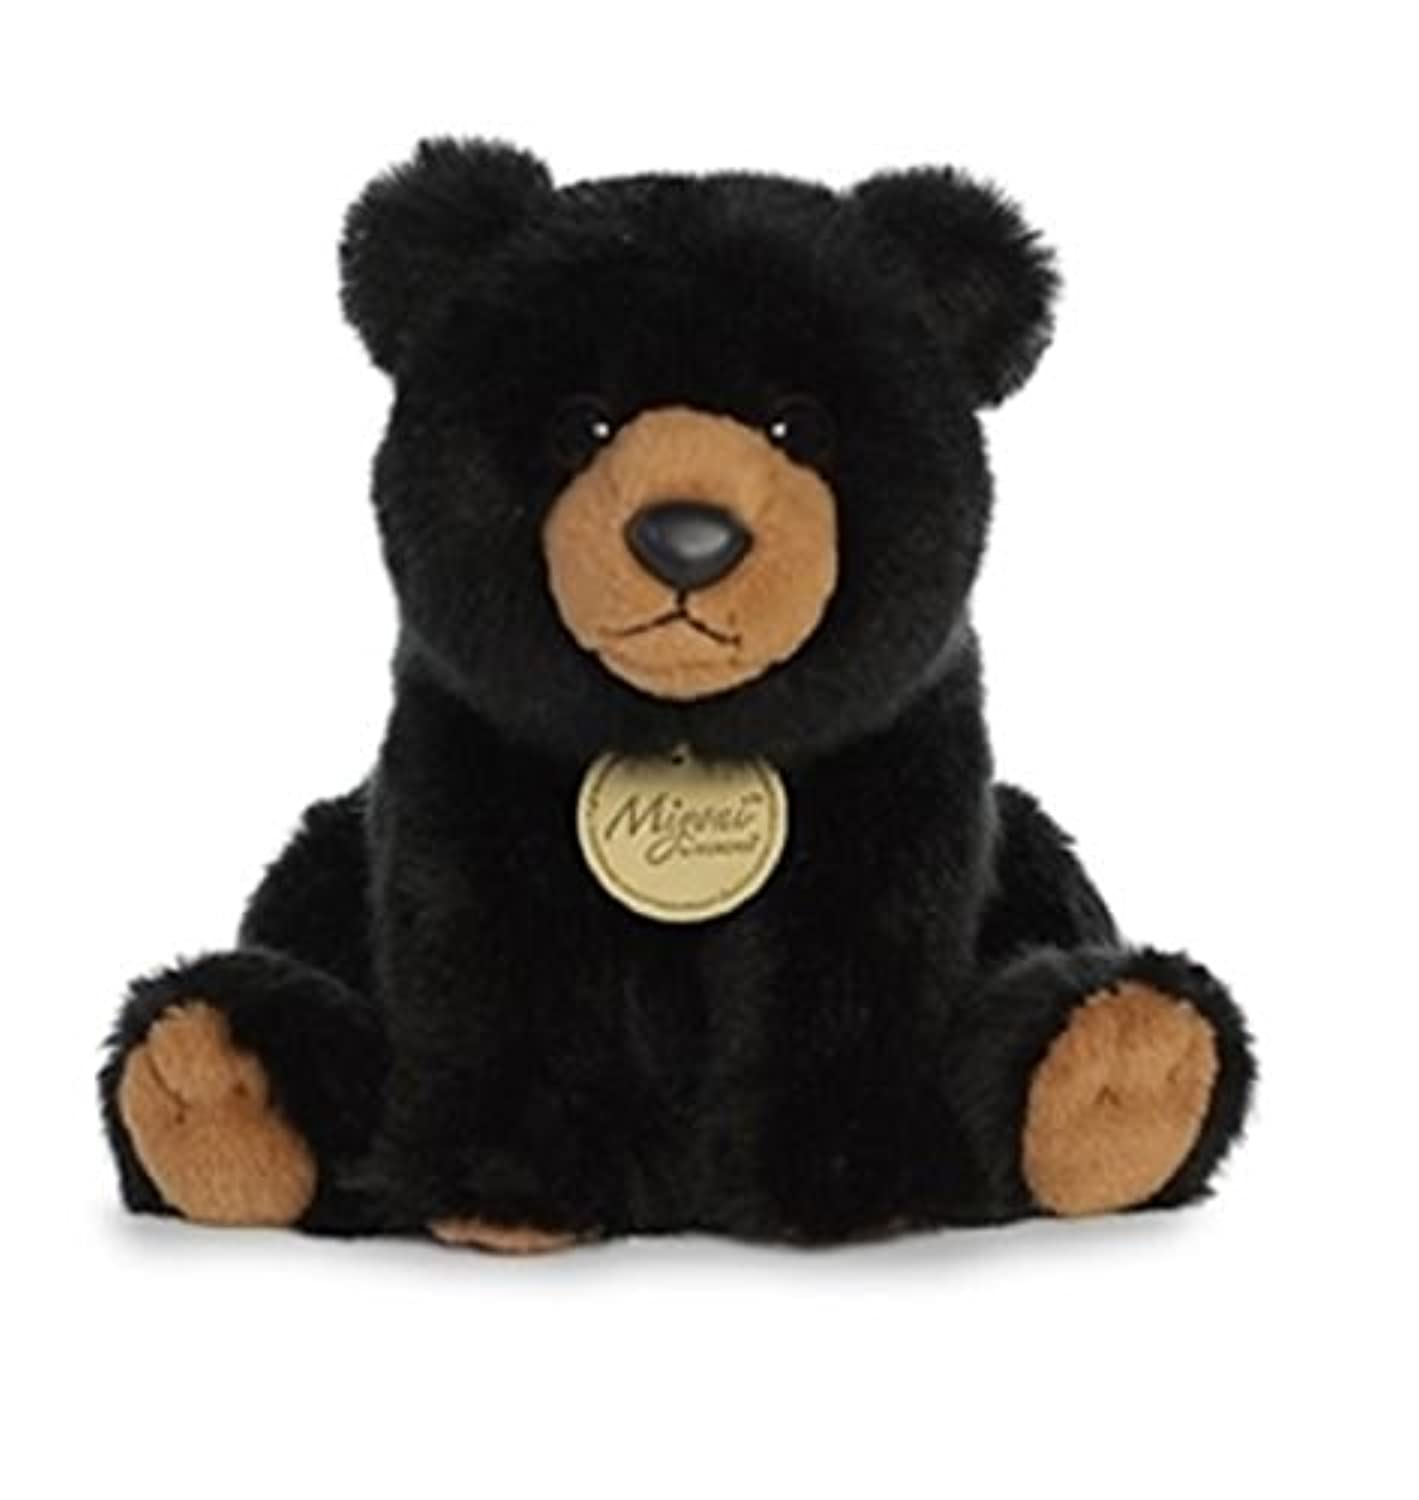 Miyoni SittingブラックBear Plush Stuffed Animal